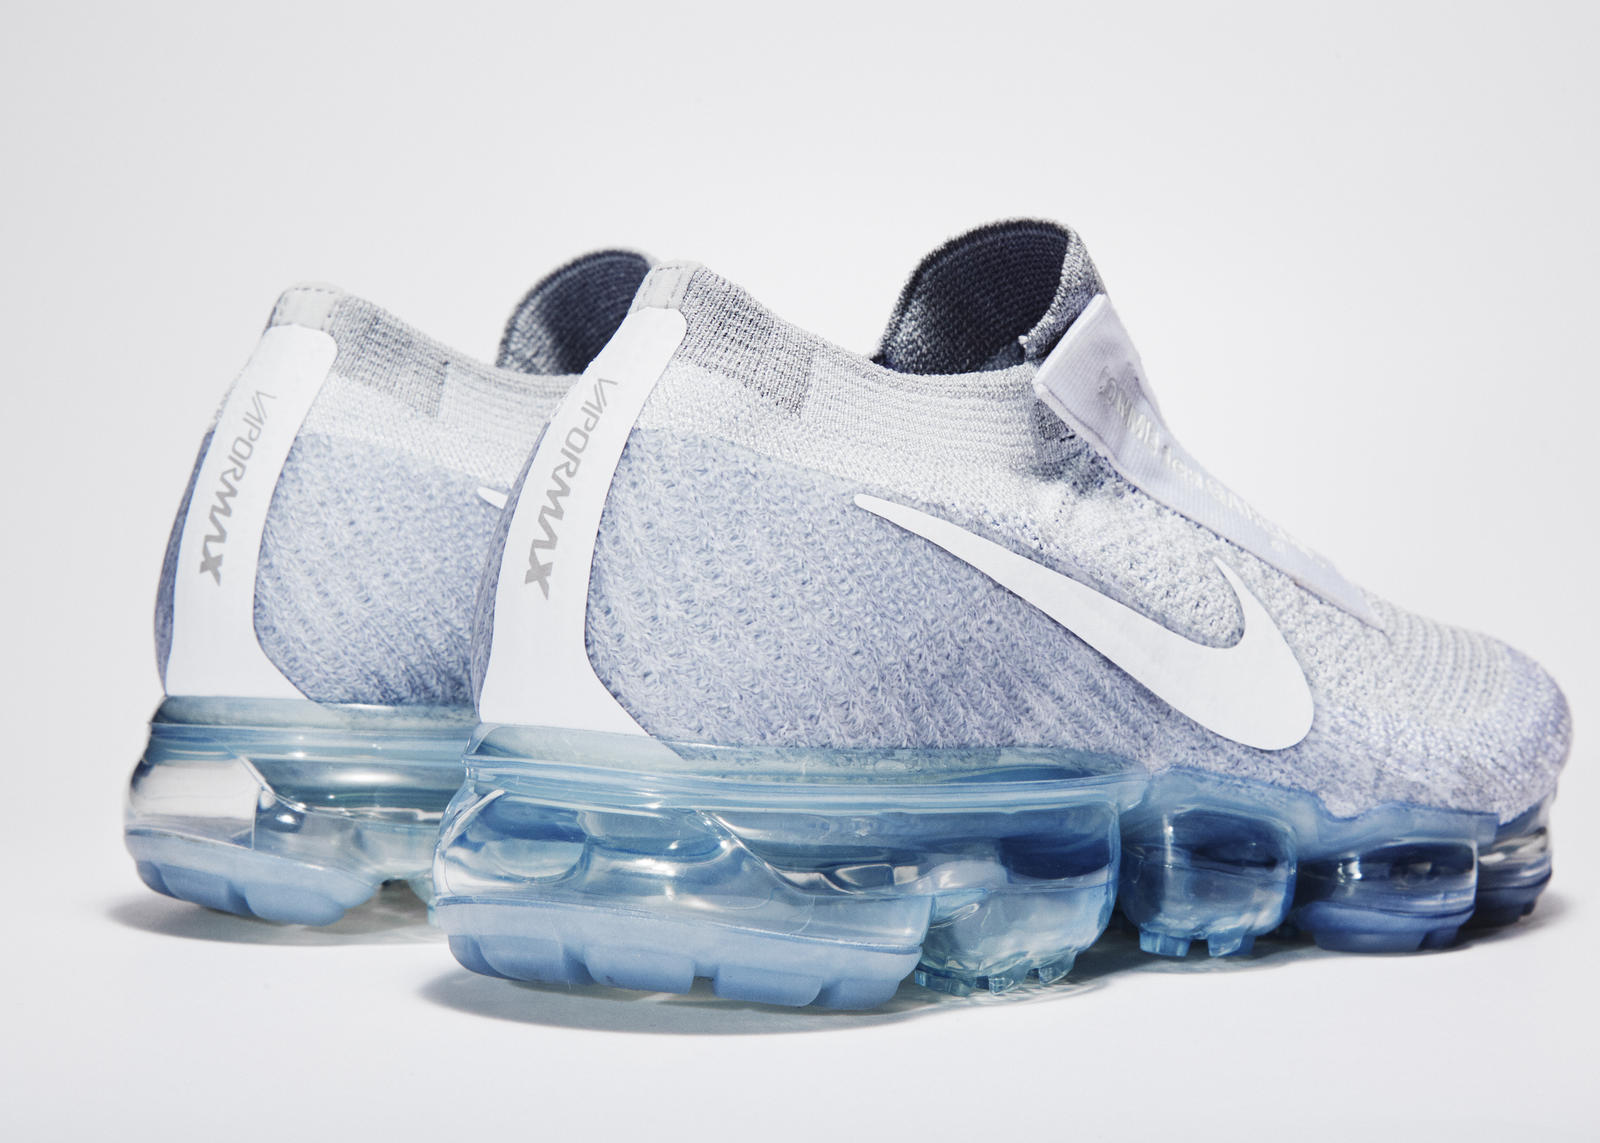 Nike vapormax for comme des garcons 6 rectangle 1600